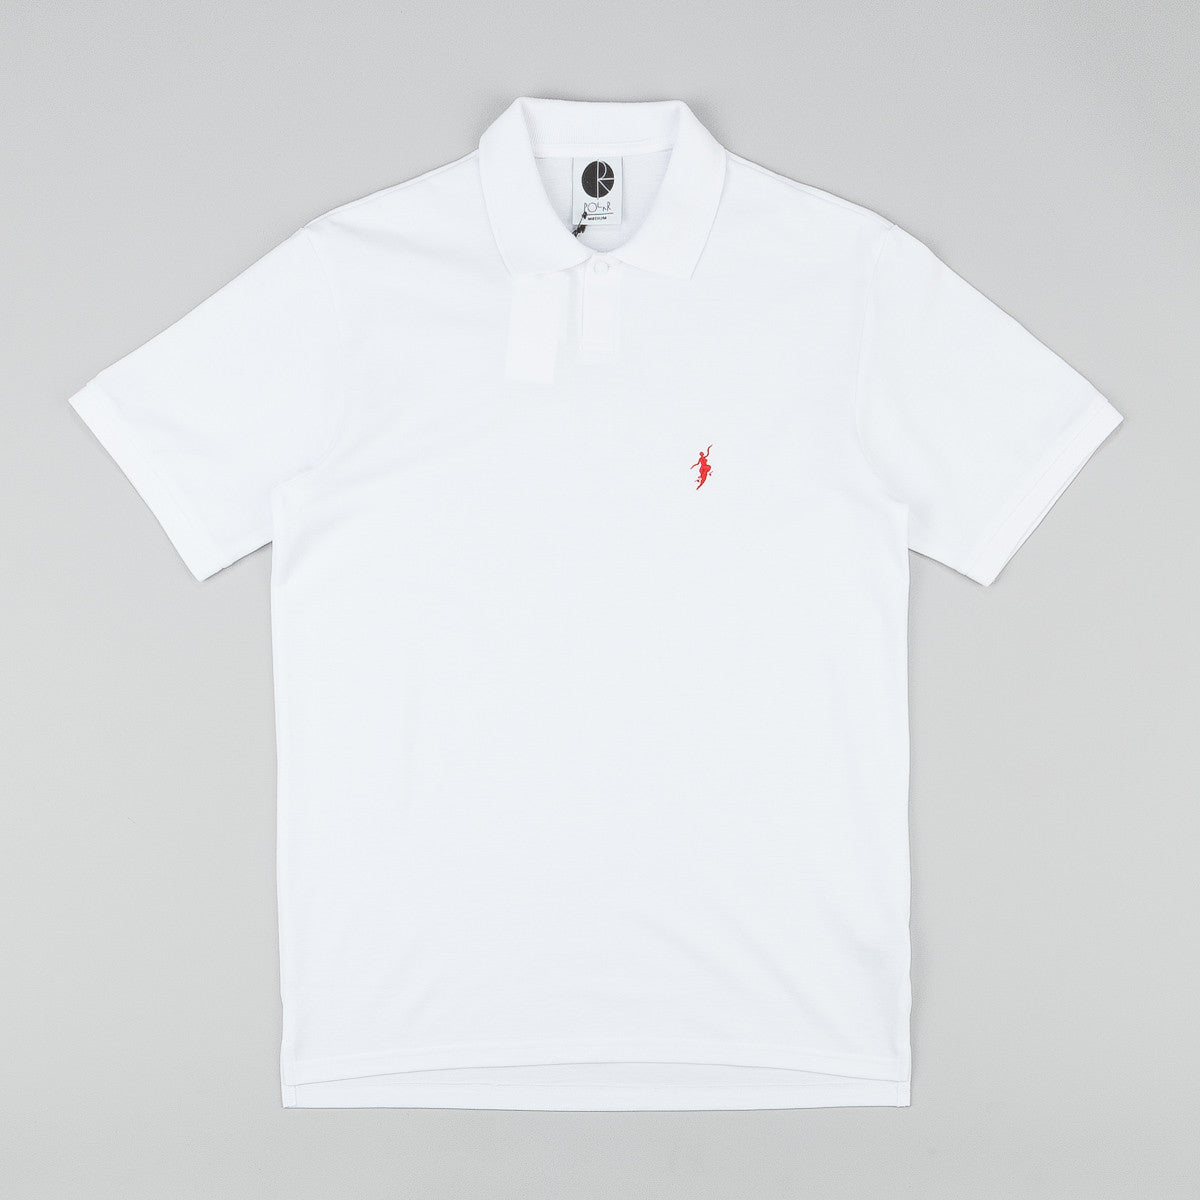 Polar No Comply Pike Polo Shirt - White / Red